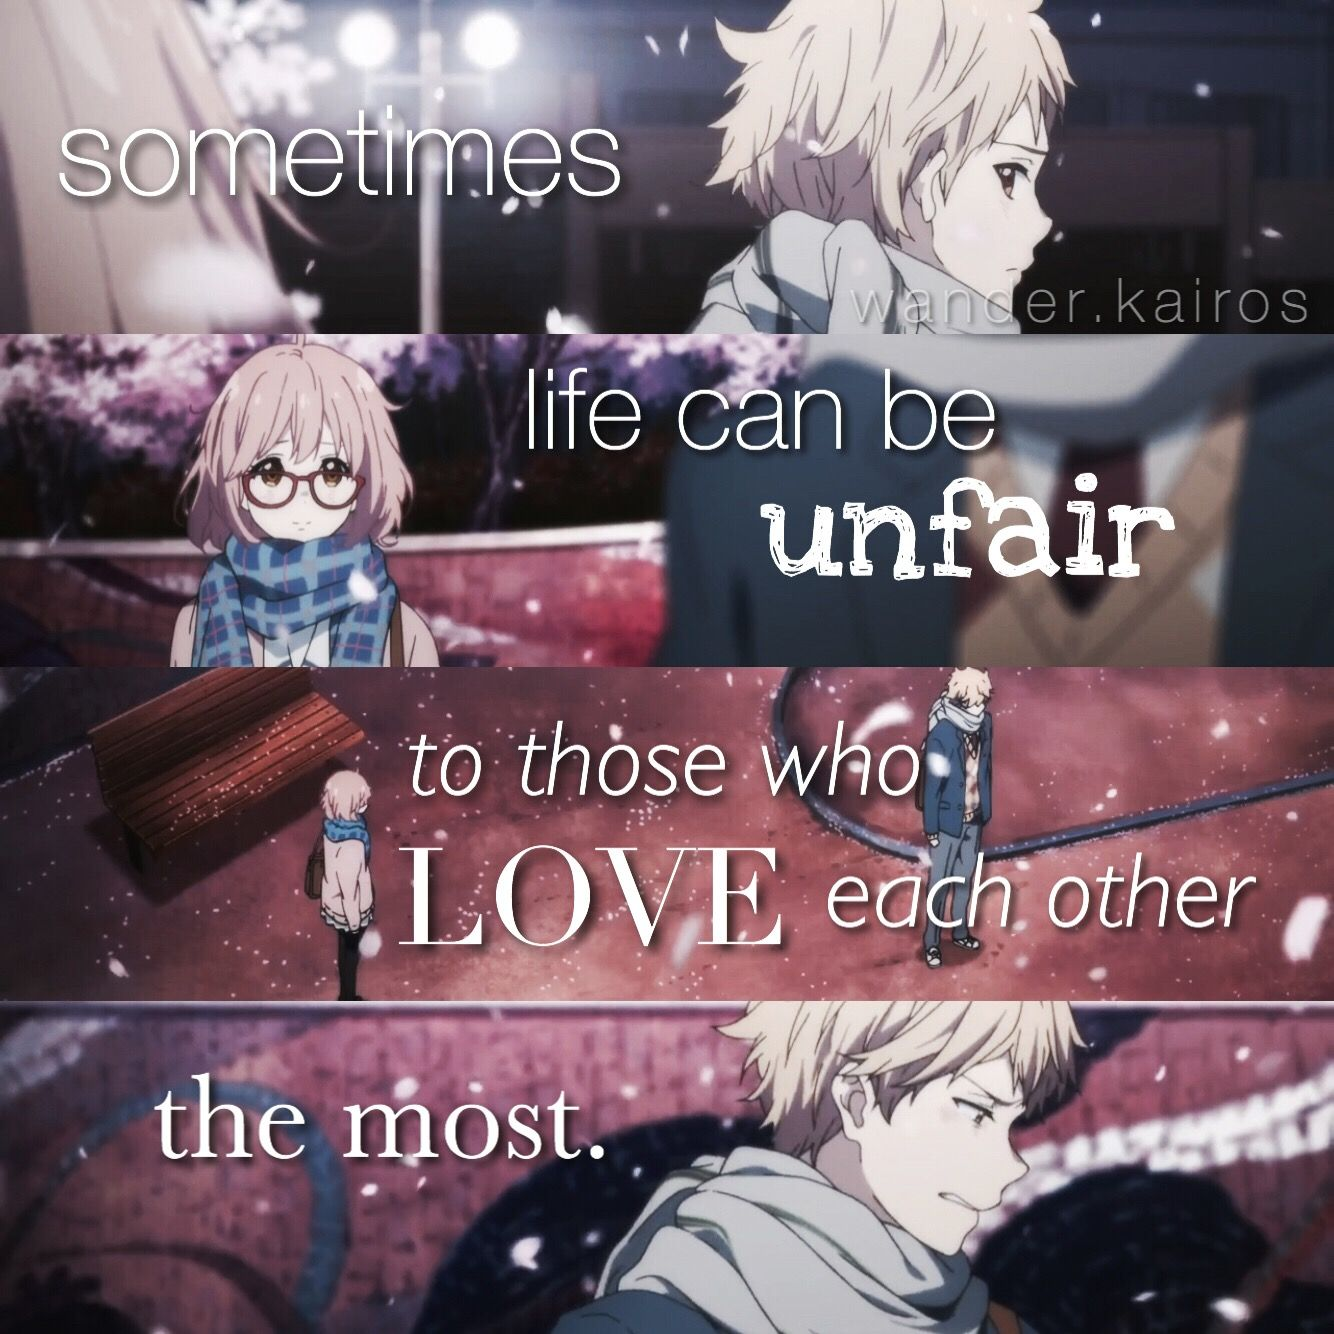 Anime Quotes About Friendship Kyoukai No Kanata Anime Quote  Anime Quotes C Dem Kokoro